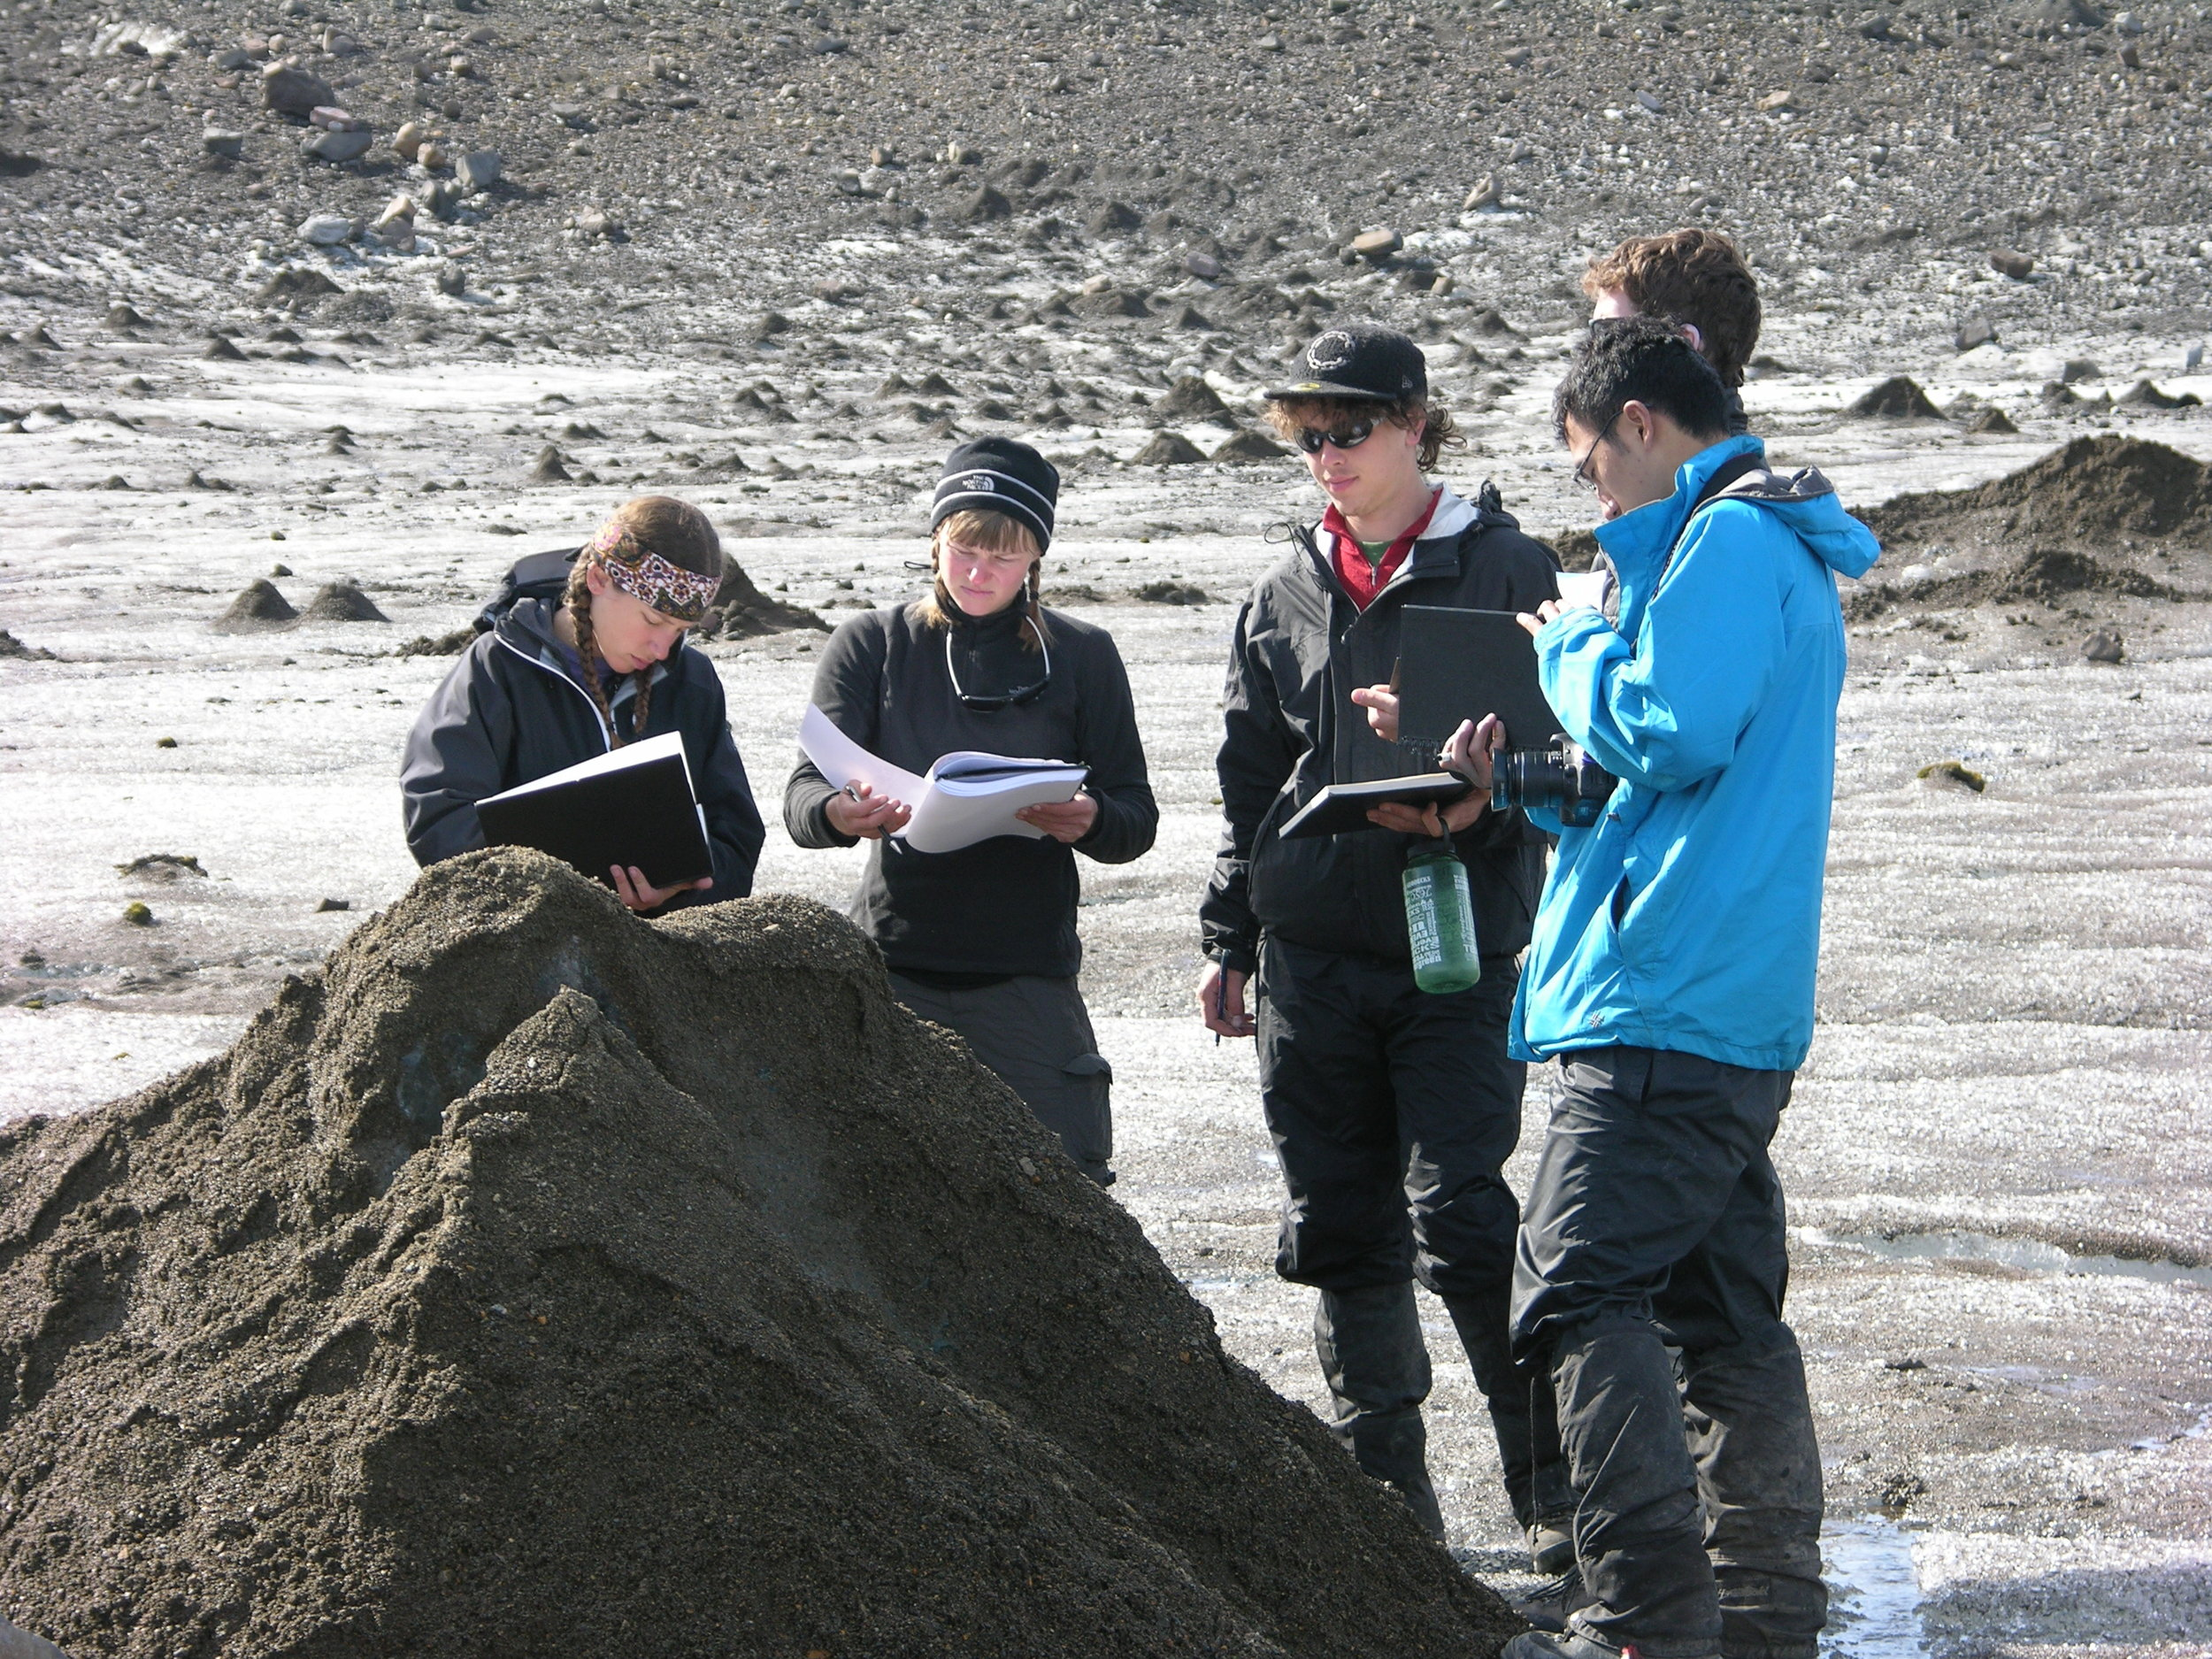 Students investigate some interesting glacial features